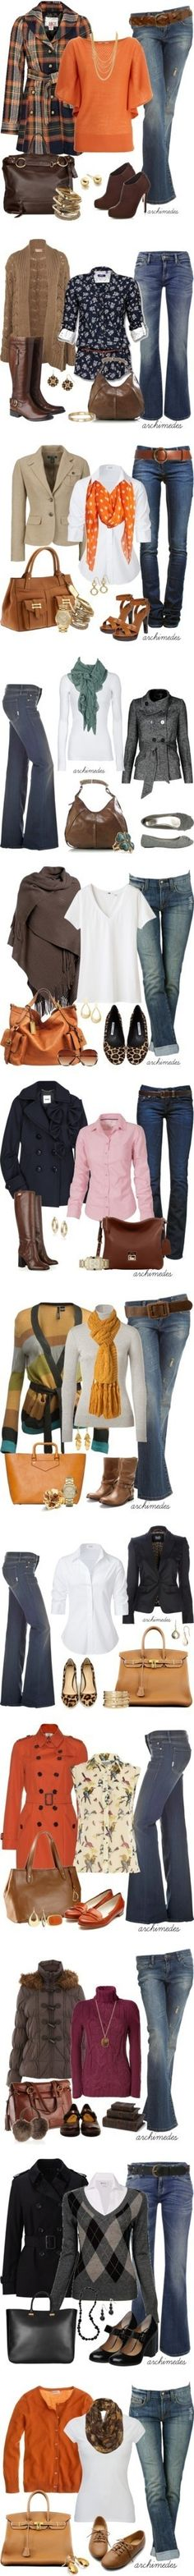 Fall outfits Cute!!